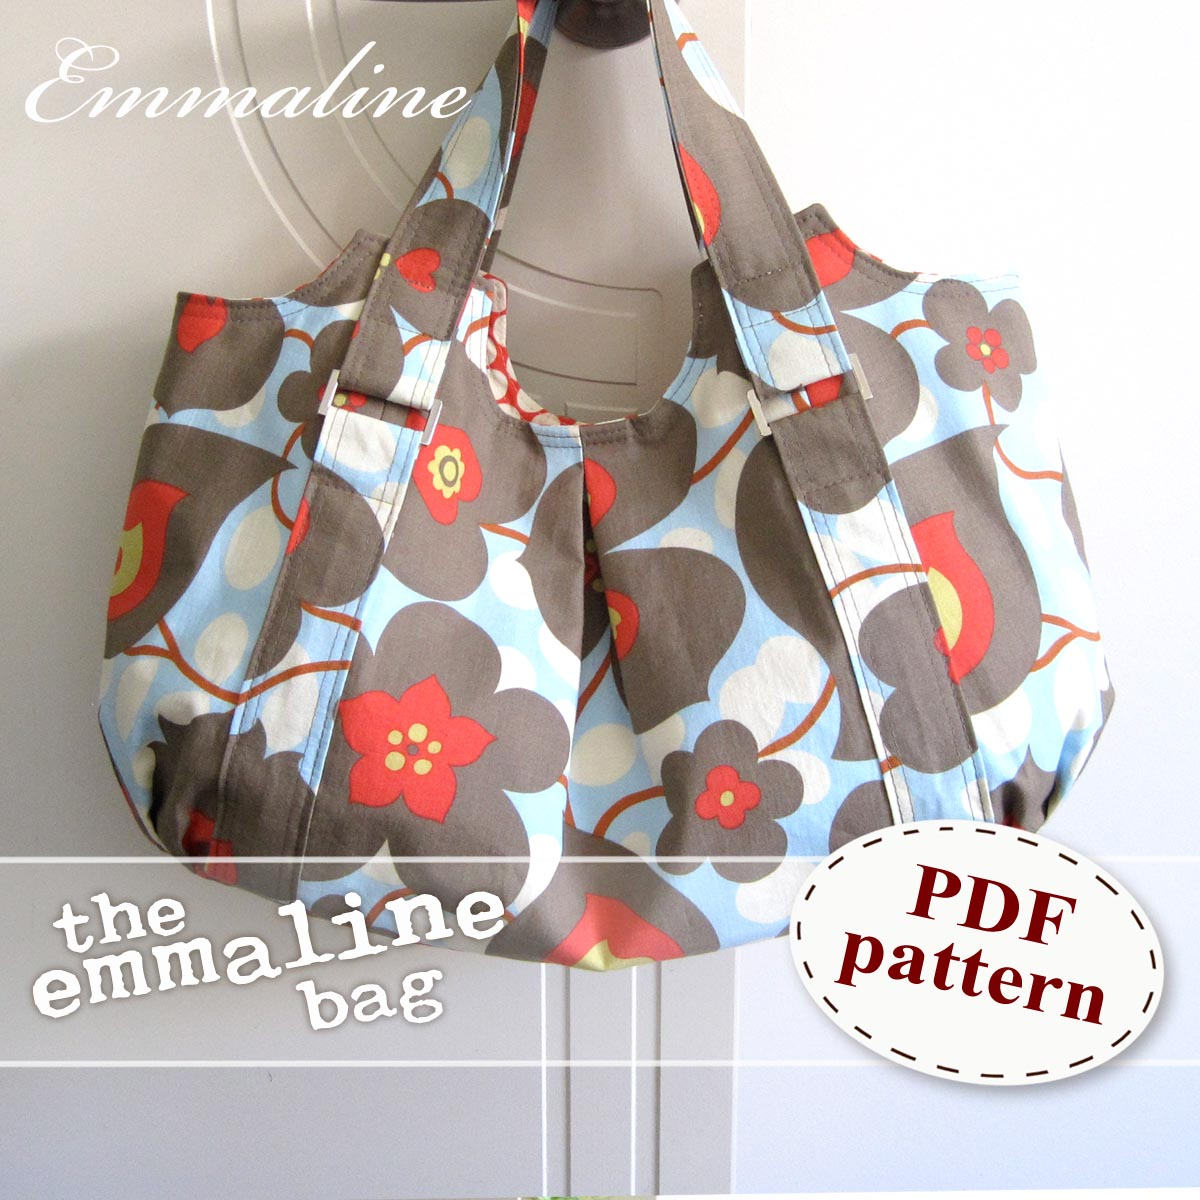 Emmaline Bags: Sewing Patterns and Purse Supplies: 03/01/2012 - 04/01 ...